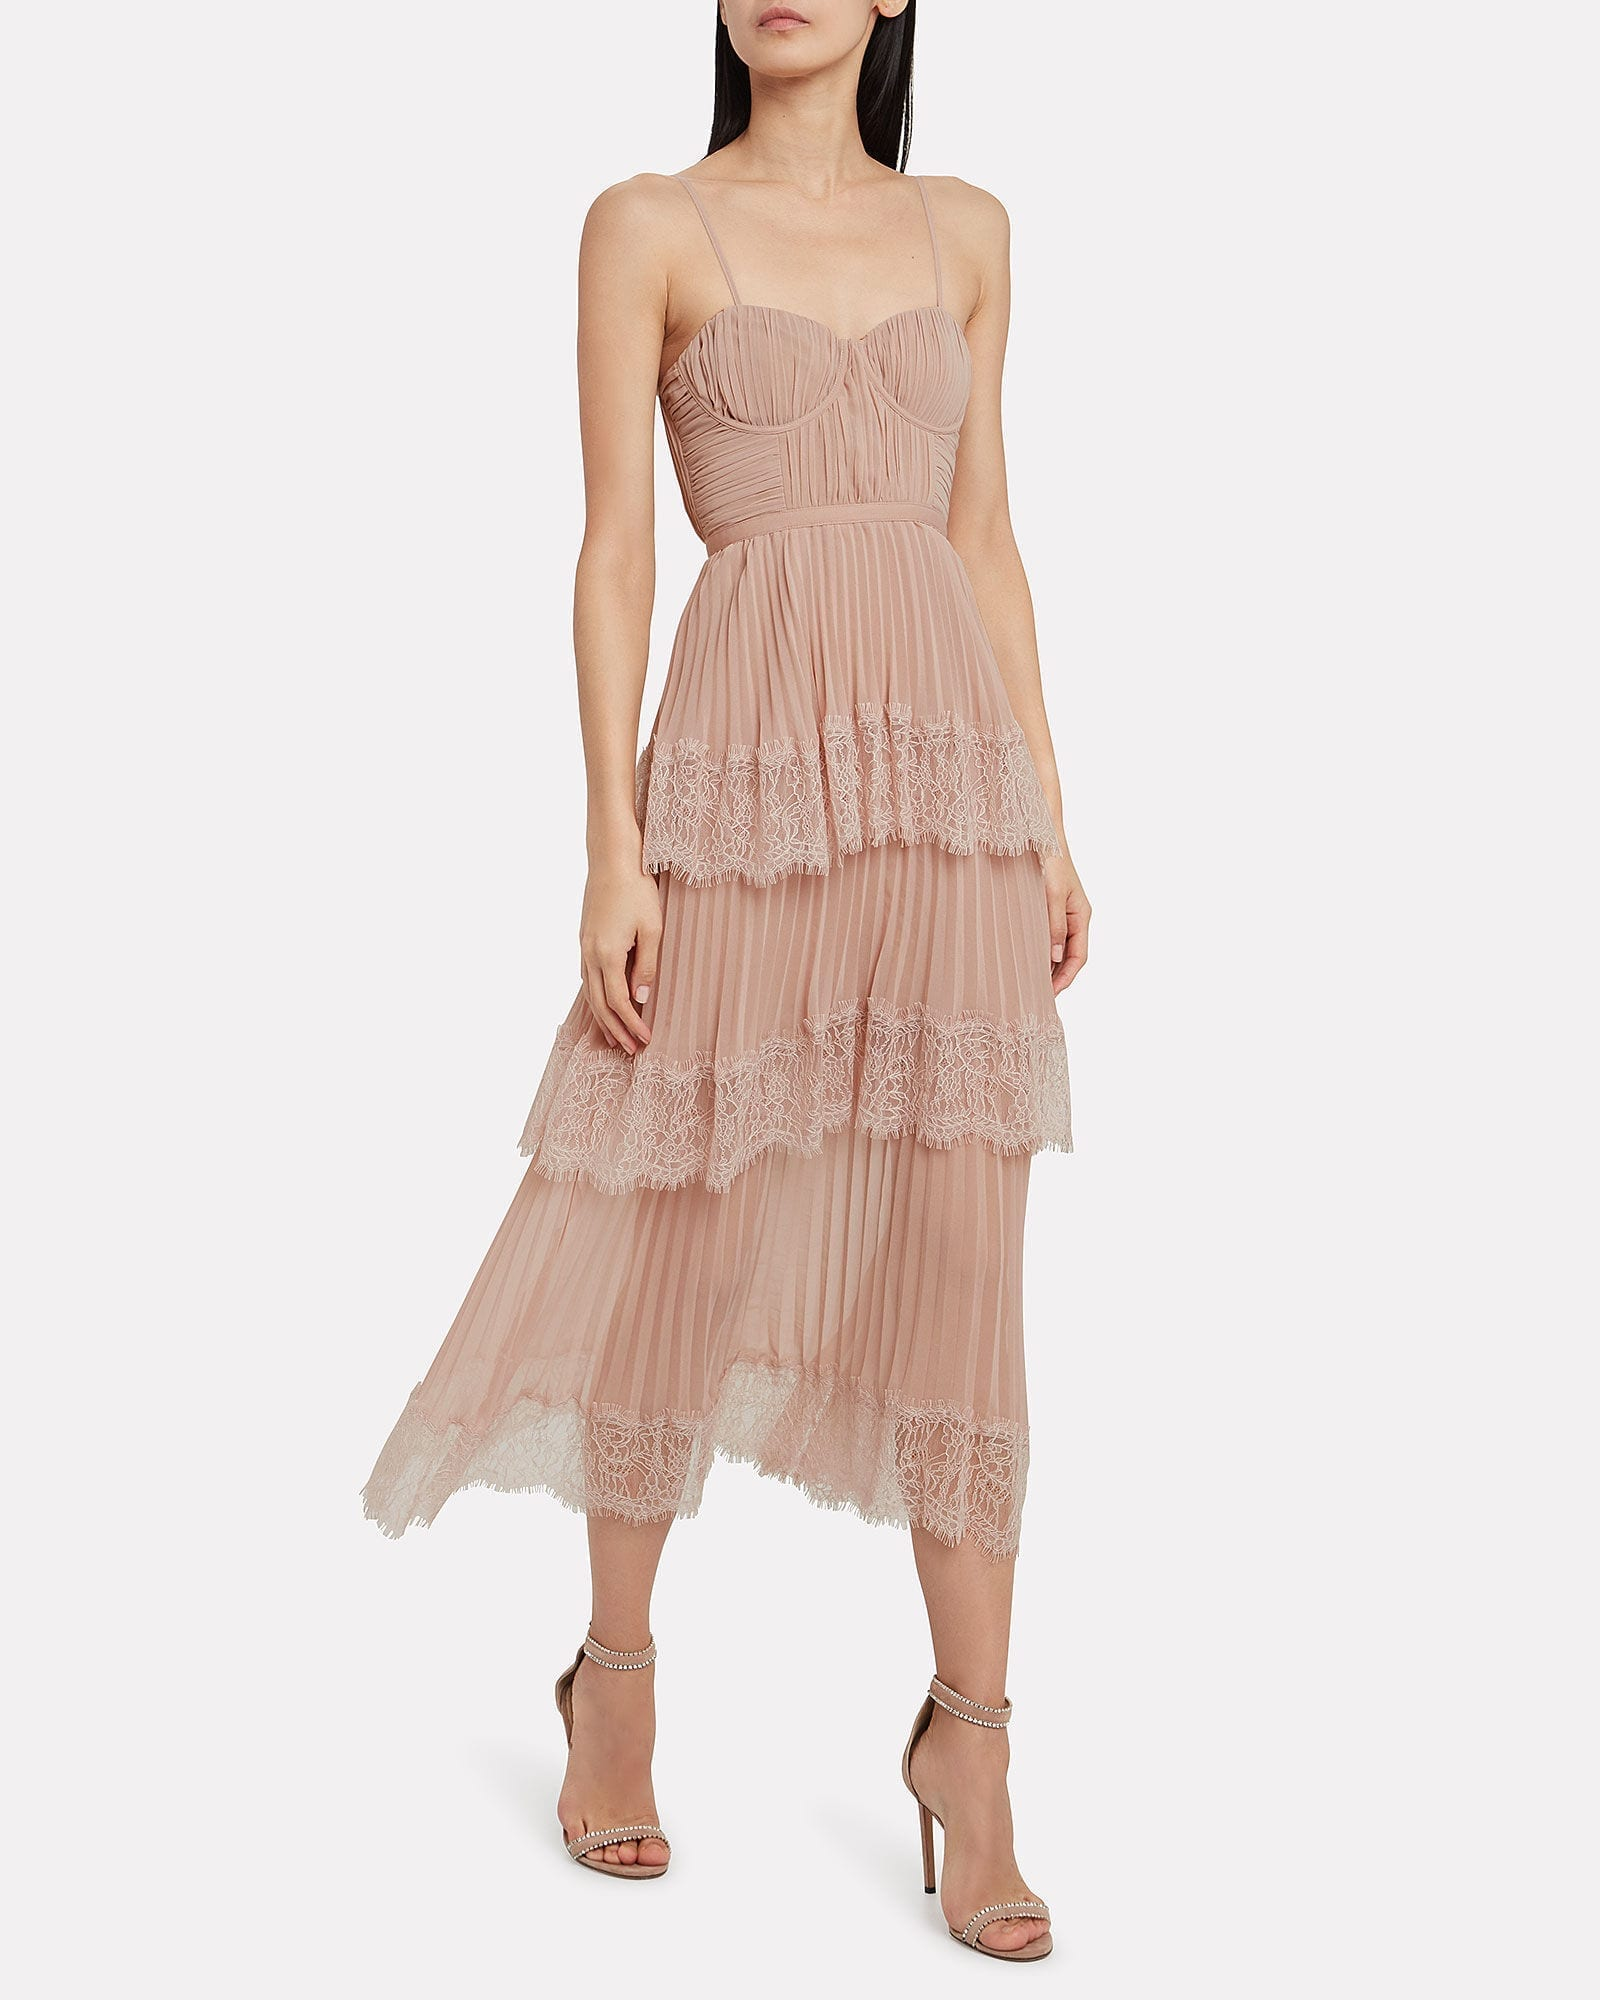 SELF-PORTRAIT Chiffon Lace-Trimmed Midi Dress